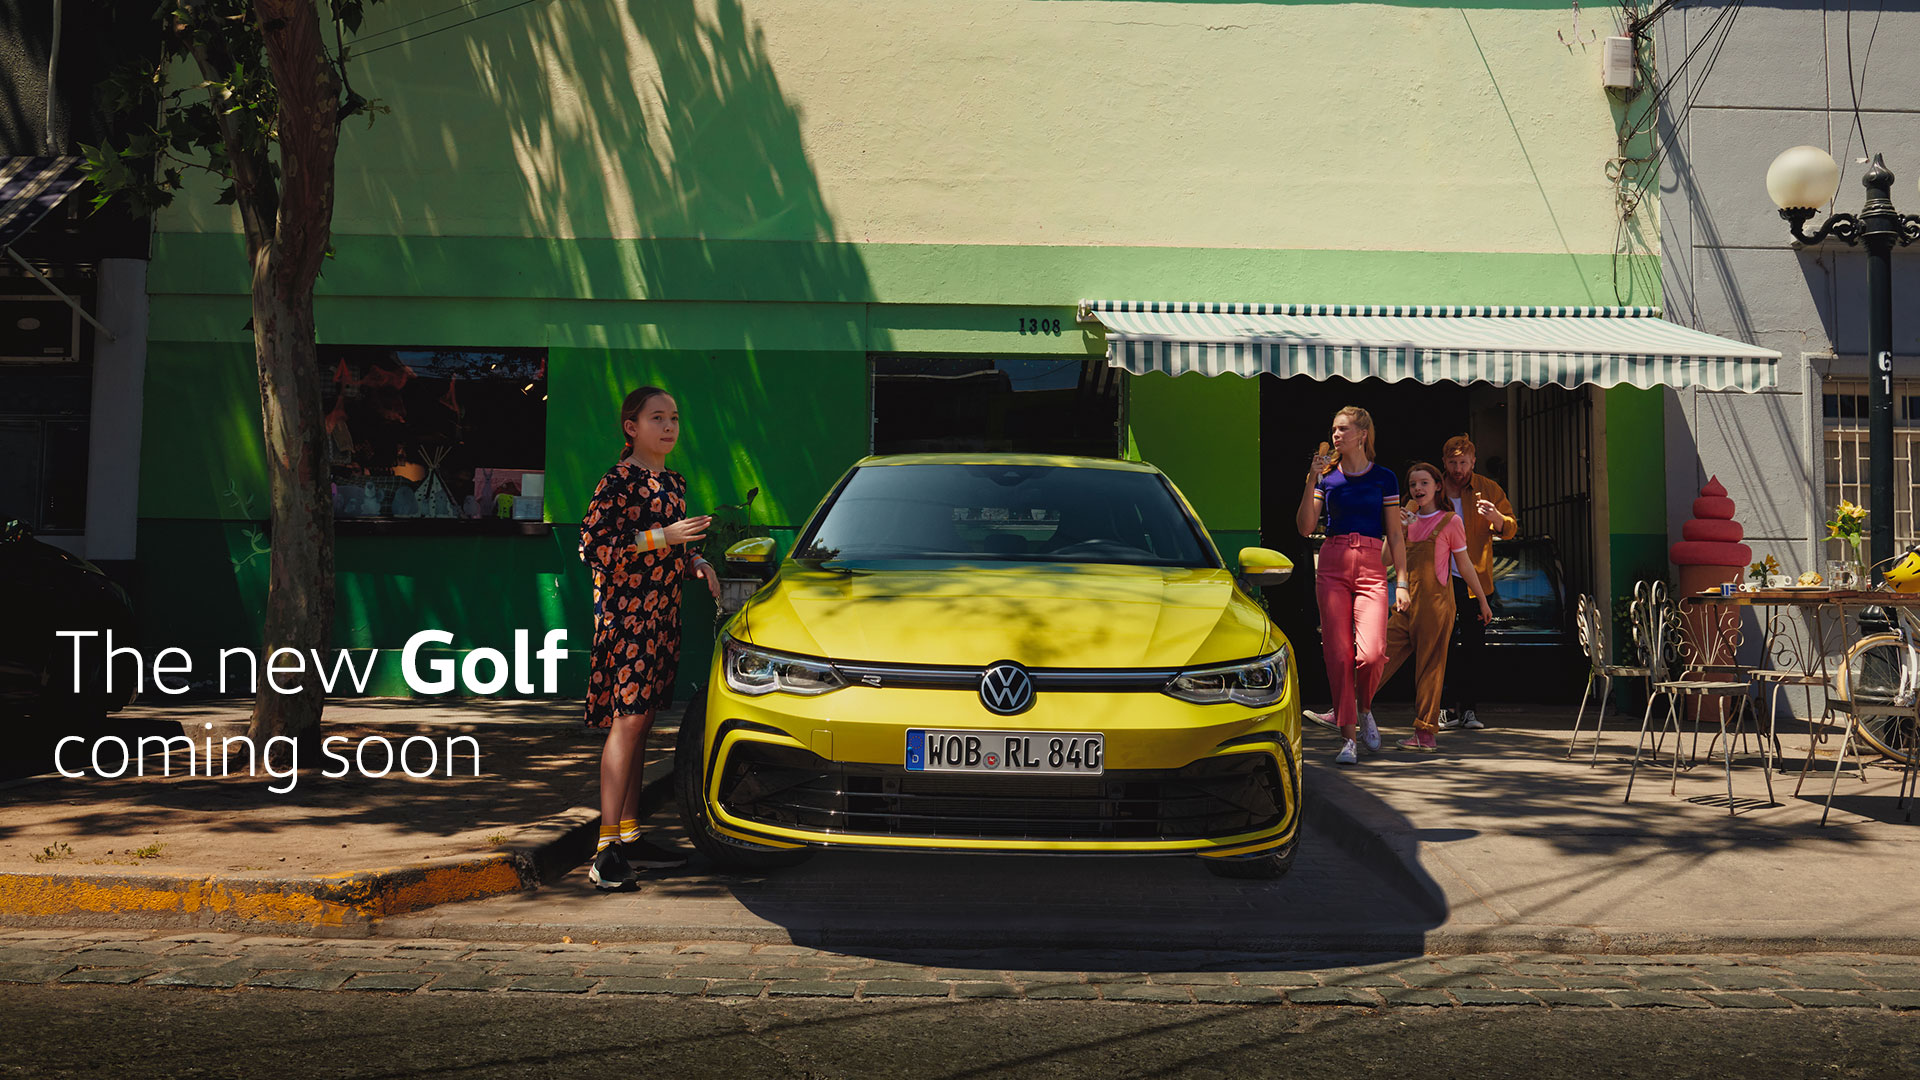 The new Golf